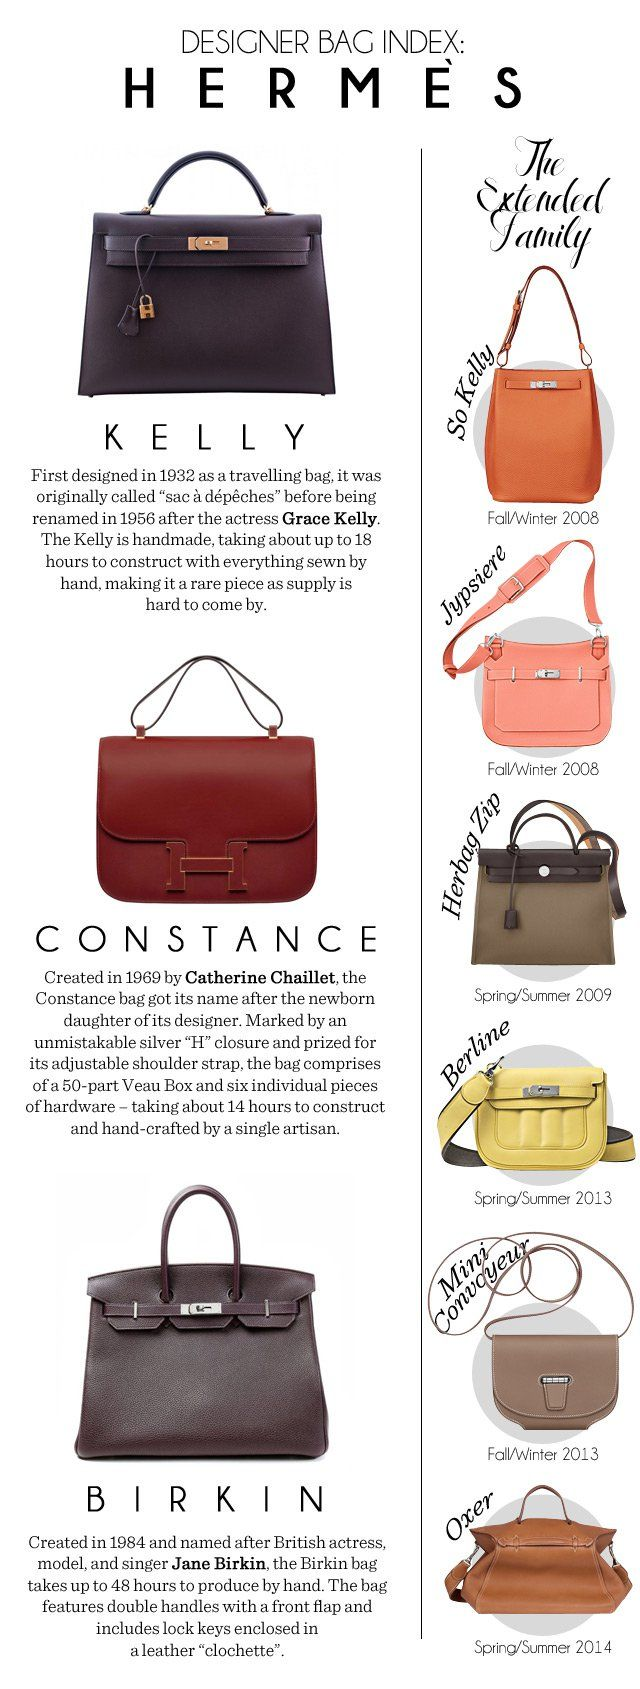 DESIGNER BAG INDEX: HERMES - http://www.stylebible.ph/fashion/style-report/designer-bag-index-herm-s/